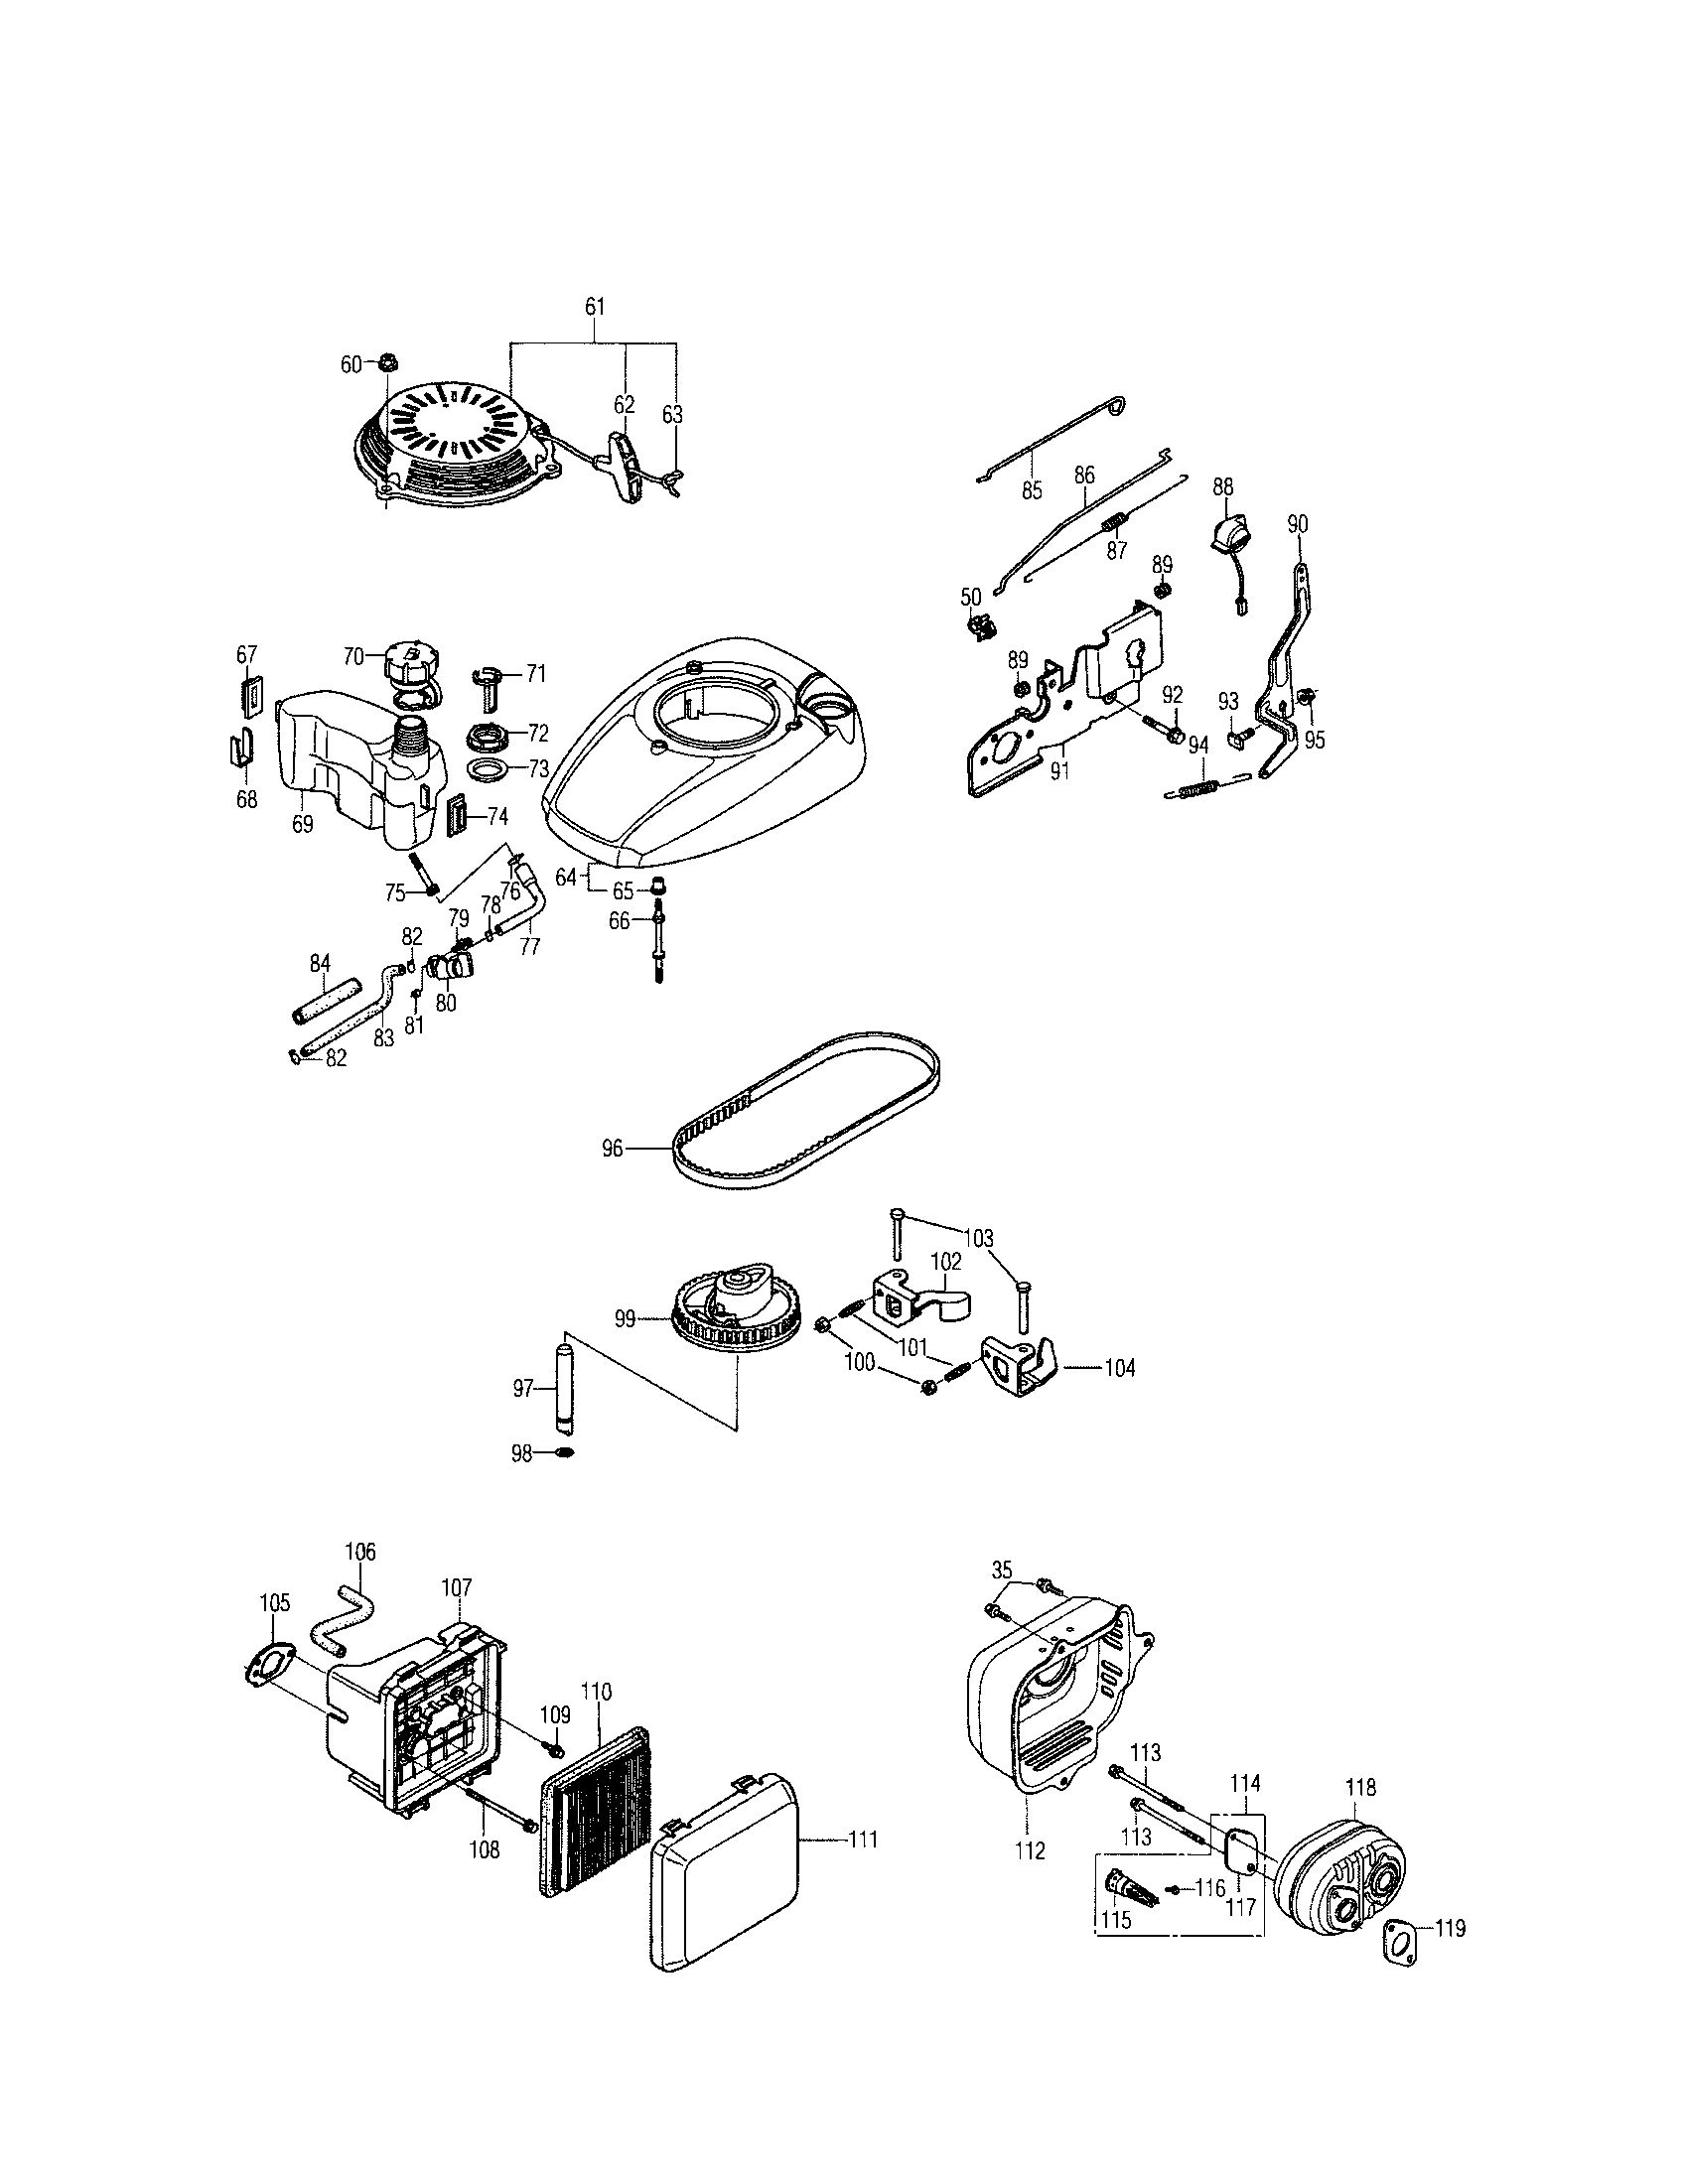 small resolution of honda gcv160 lan5r fuel tank air cleaner diagram